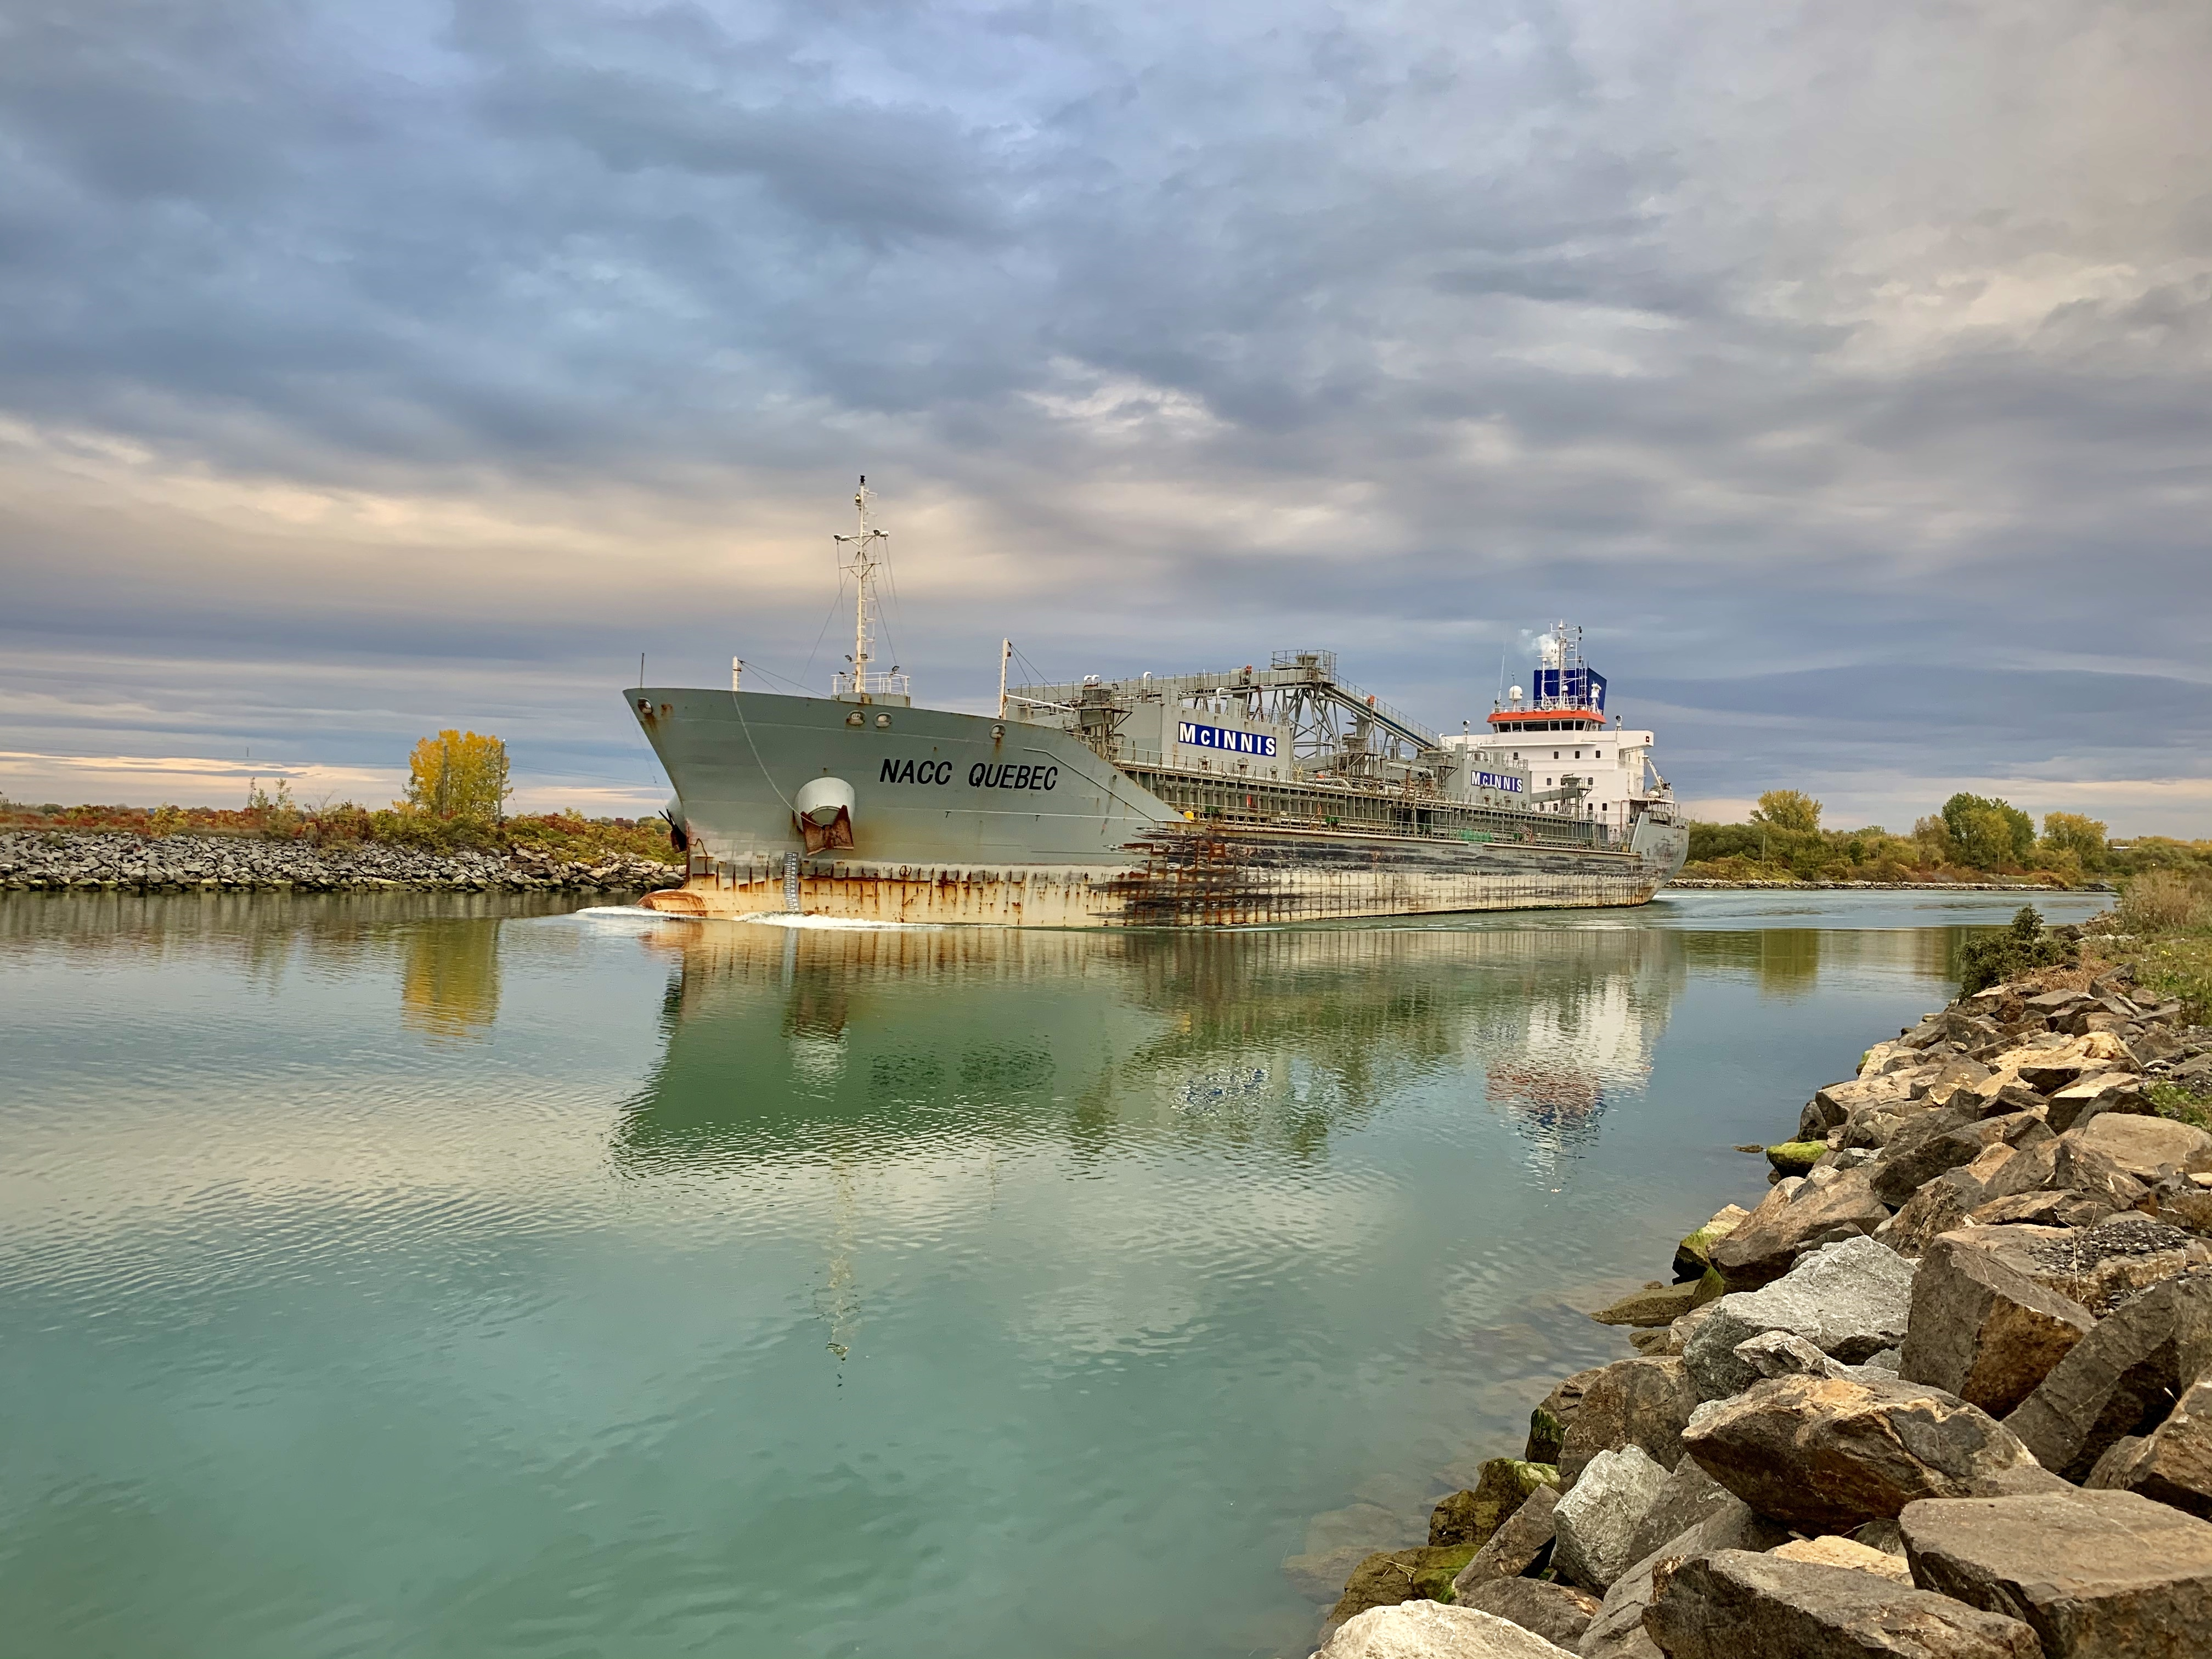 One of the many ships that pass through the seaway by Kahnawake every day. (Ka'nhehsí:io Deer/CBC)